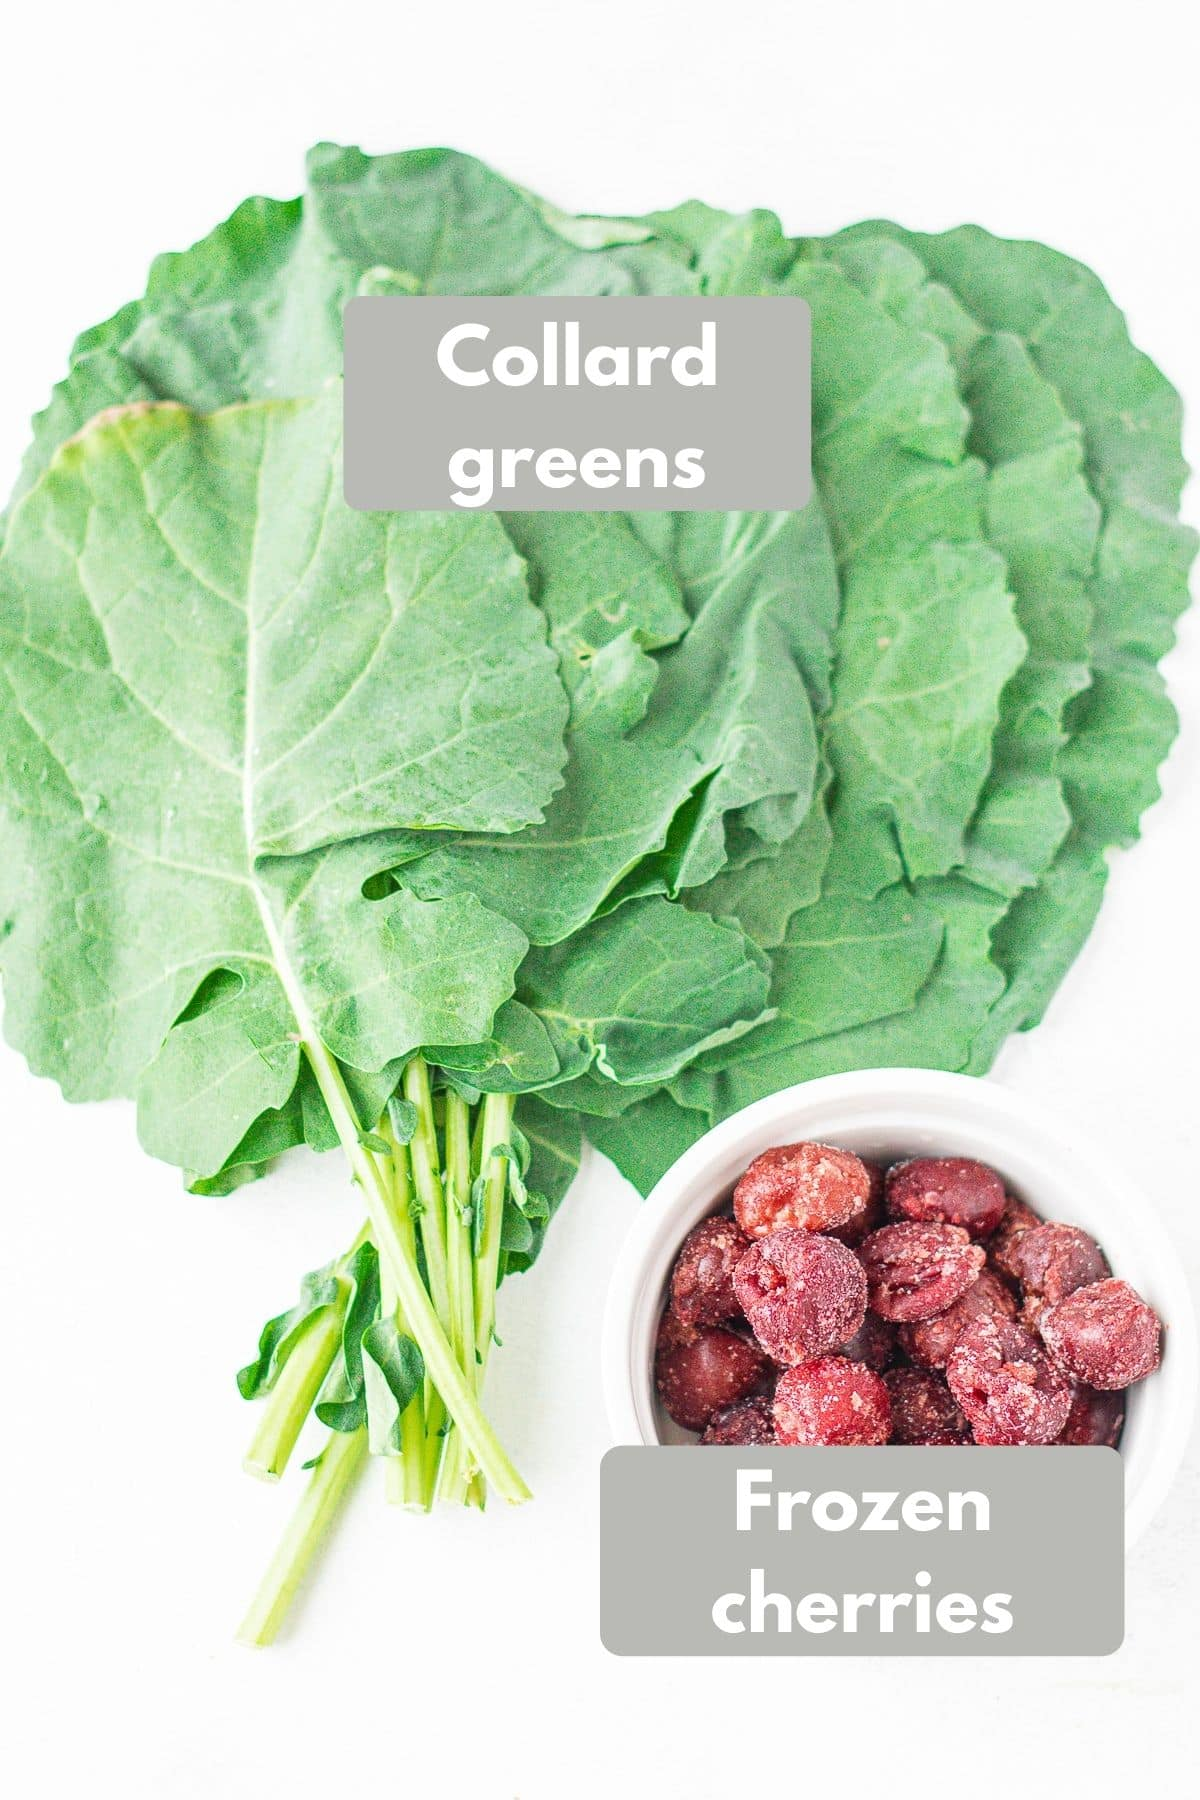 Collard green smoothie labeled ingredients